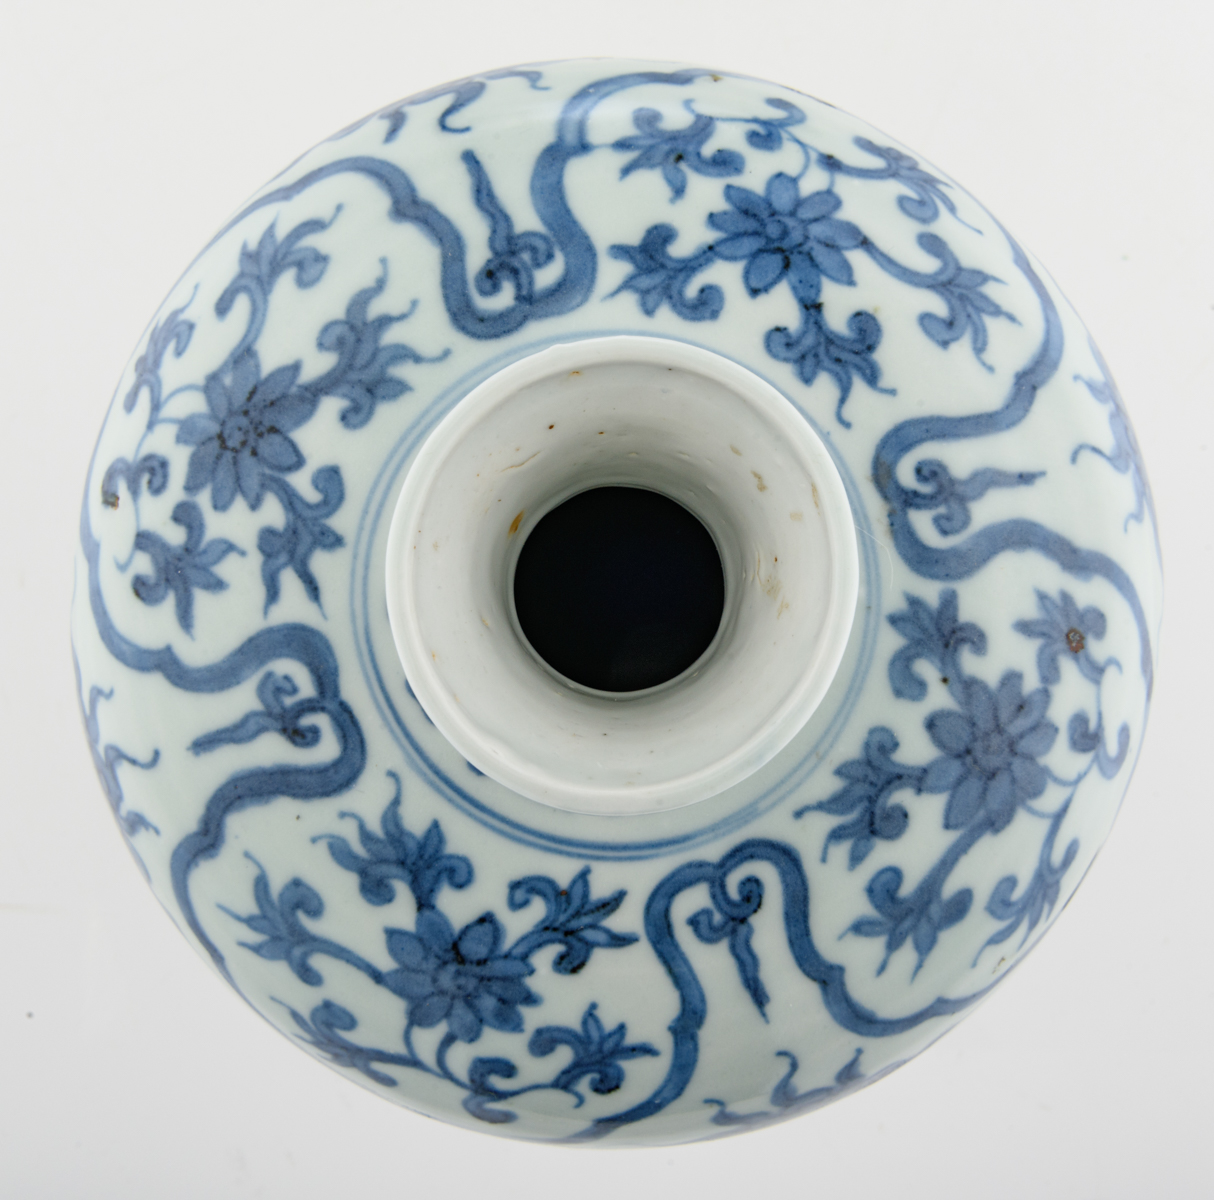 Lot 41 - A Chinese blue and white Ming type meiping vase, decorated with scholars and their servants standing